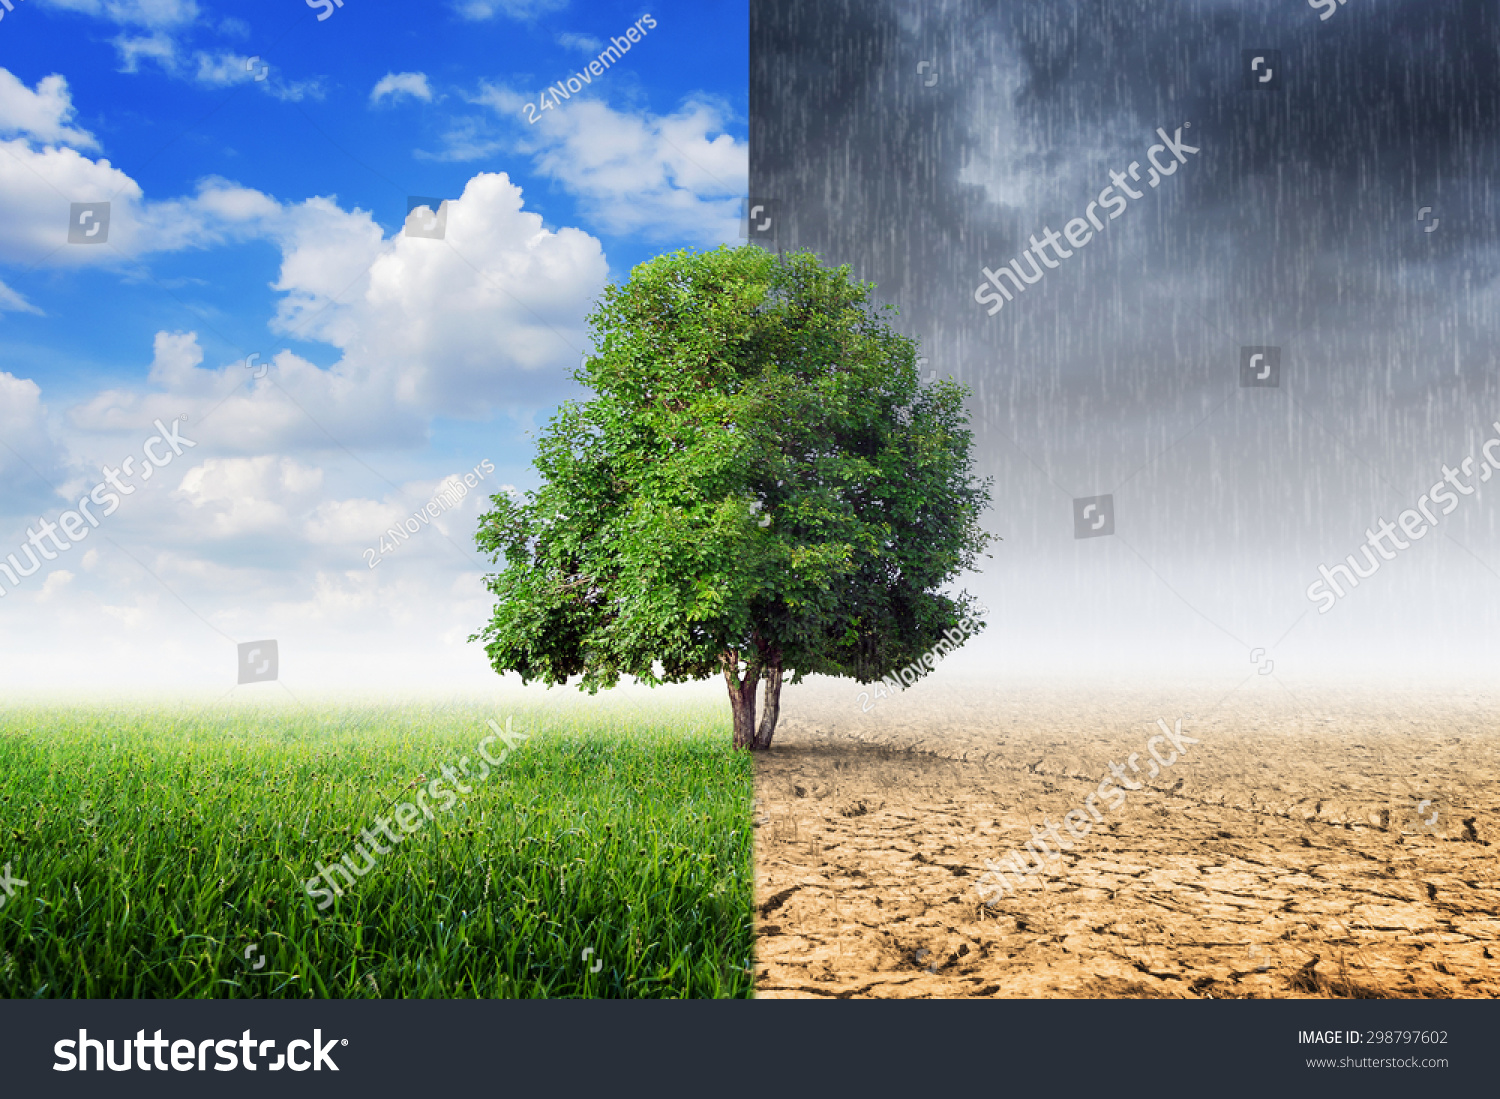 environmental climate change Because the effects of climate change are not simply environmental 5 reasons why climate change is a social issue, not just an environmental.